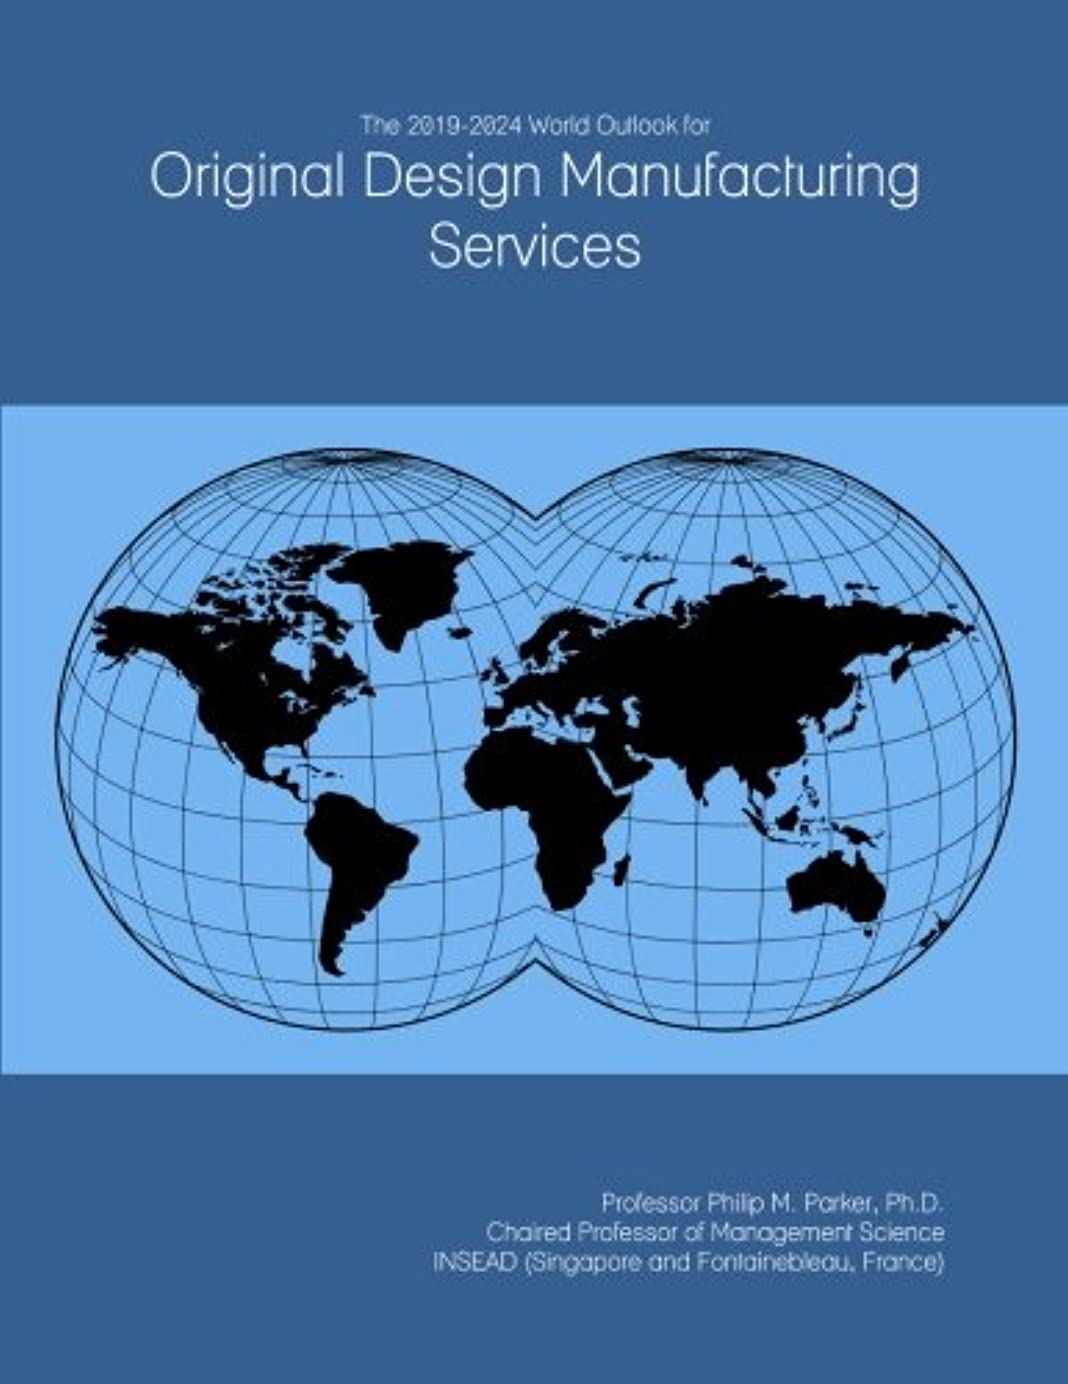 インスタンス状戸棚The 2019-2024 World Outlook for Original Design Manufacturing Services